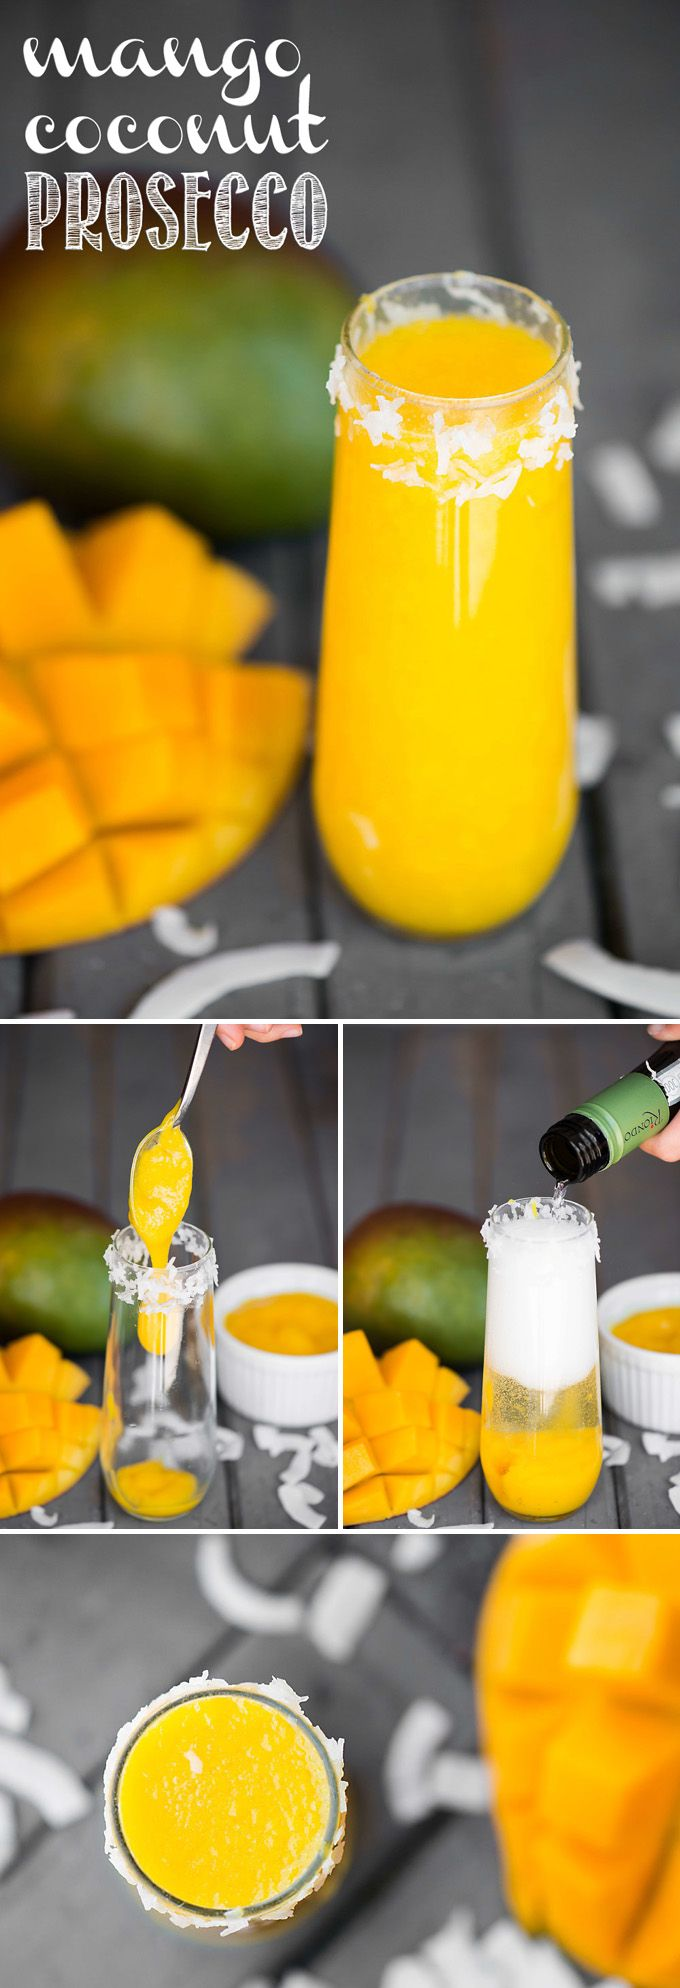 Add bubbles to your summer tropical cocktail! This Mango Coconut Prosecco combines the flavors of fresh mango and coconut with Italian sparkling wine.